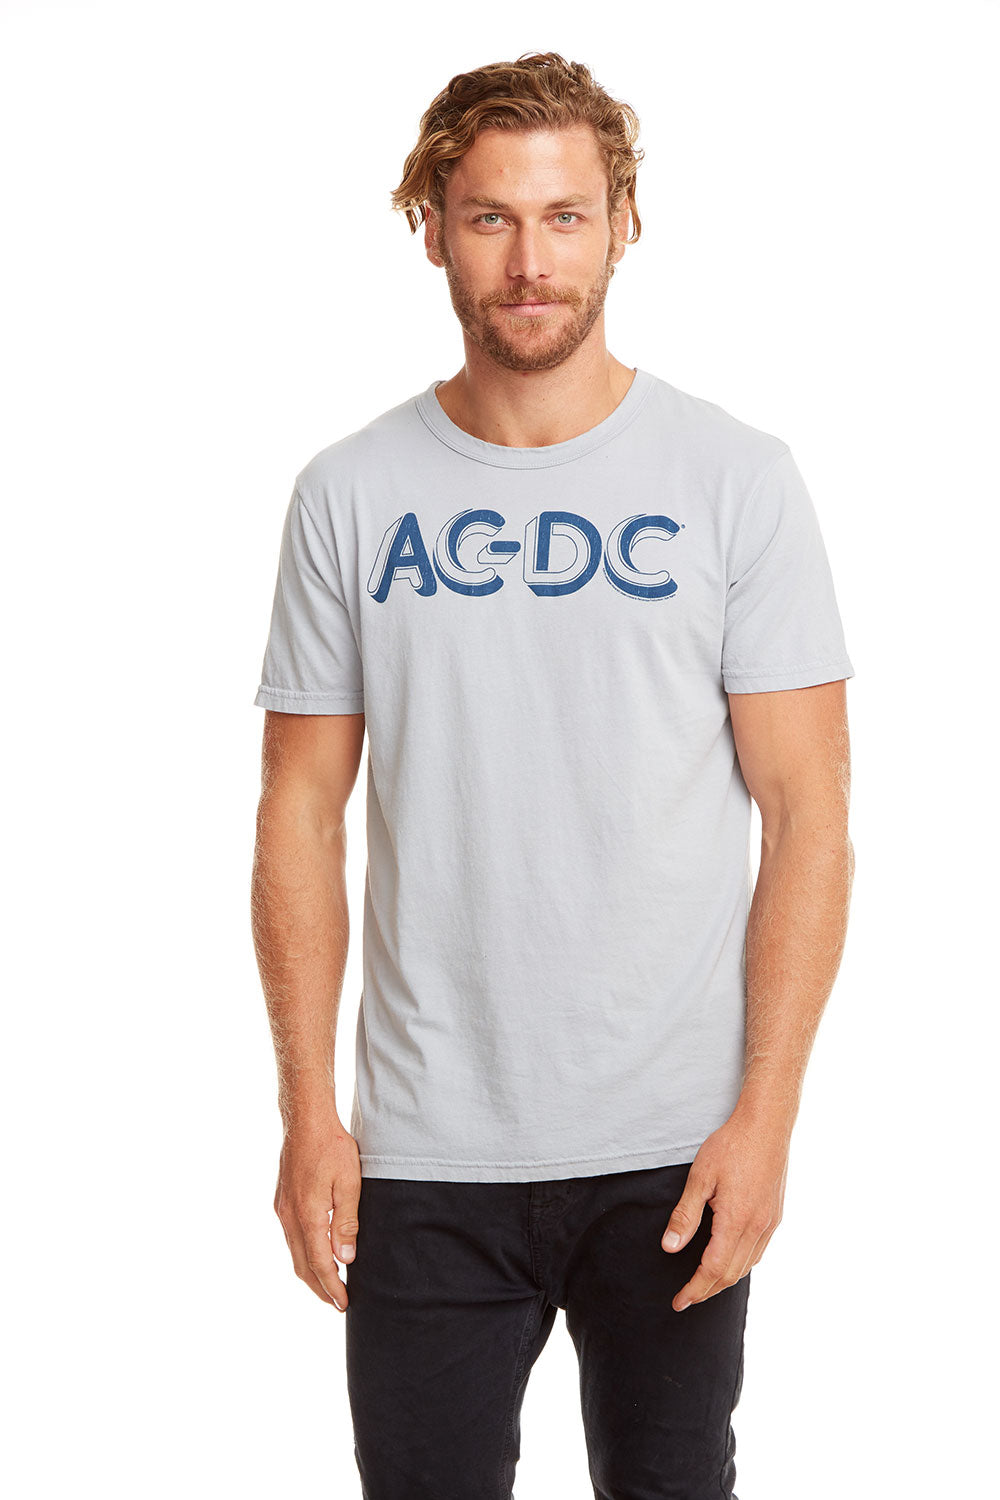 ACDC - Twisted Logo MENS - chaserbrand